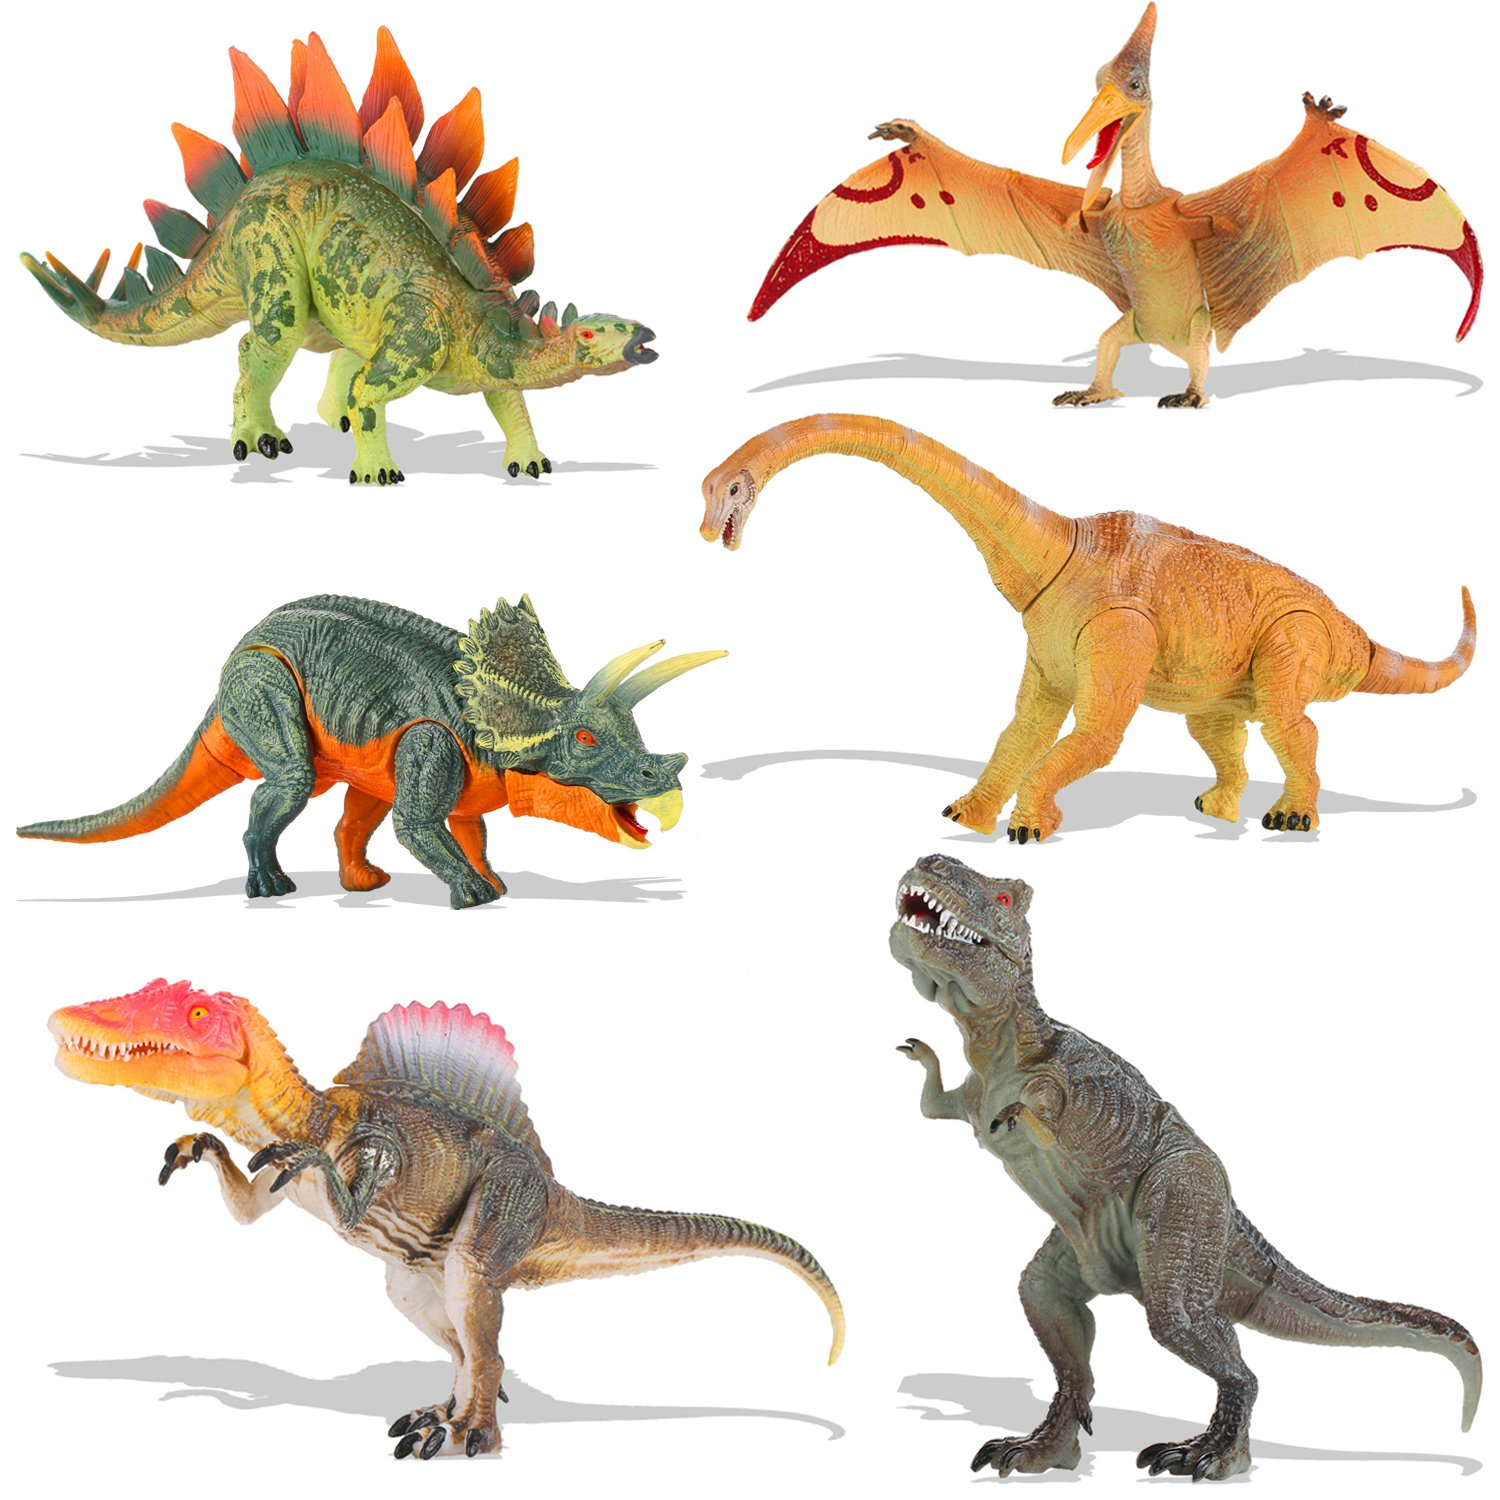 QuadPro Dinosaur Toys Sets for Kids, 6 Piece Jumbo Plastic Dinosaurs Figures Include Triceratops, Brachiosaurus, Spinosaurus,Stegosaurus, Pterodactylus, T Rex Toy, STEM Toys for Boys and Girls